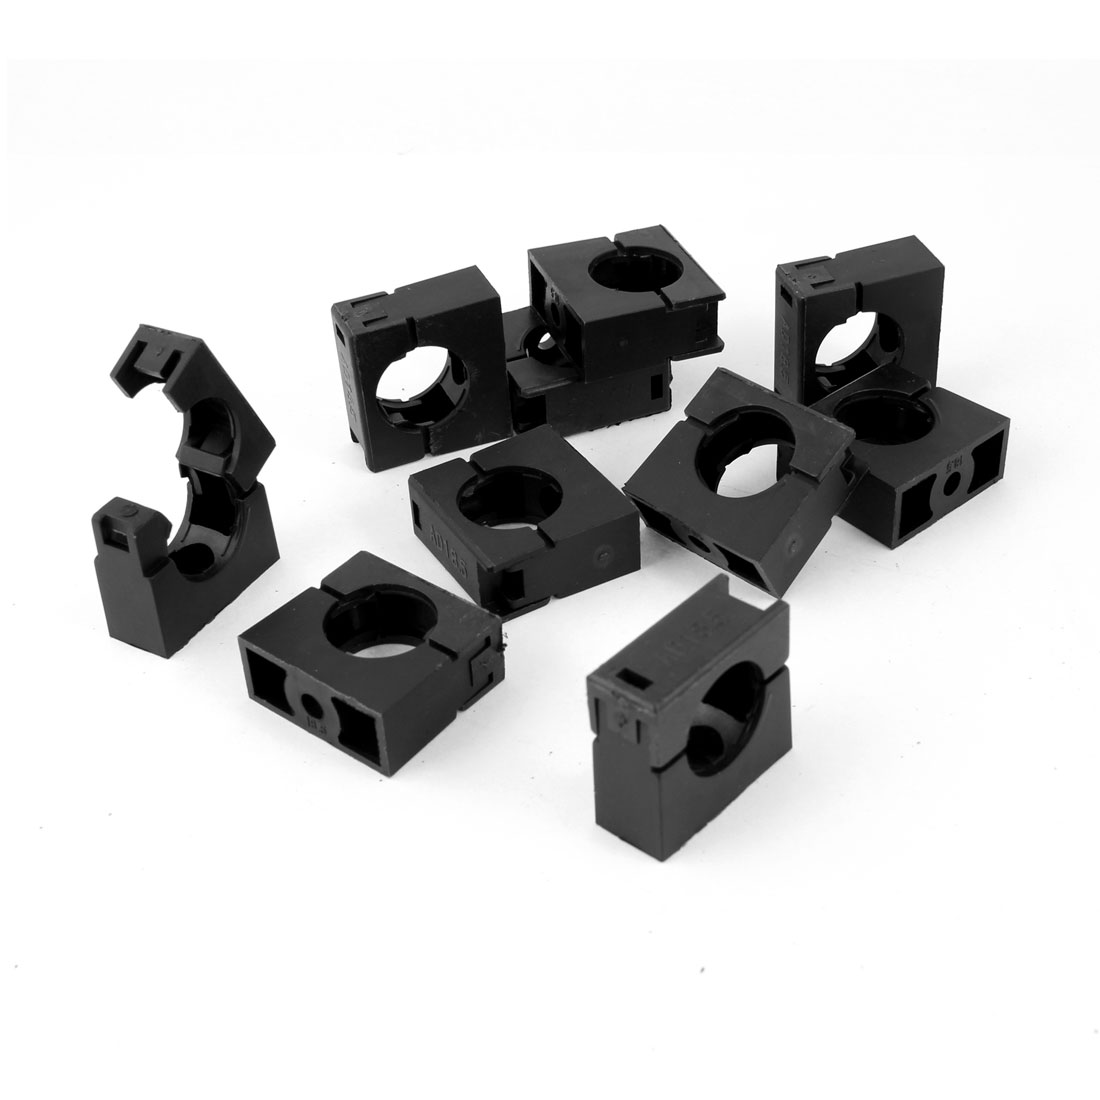 AD18.5 Flexible Pipe Conduit Plastic Mounting Stand Bracket 10 pcs